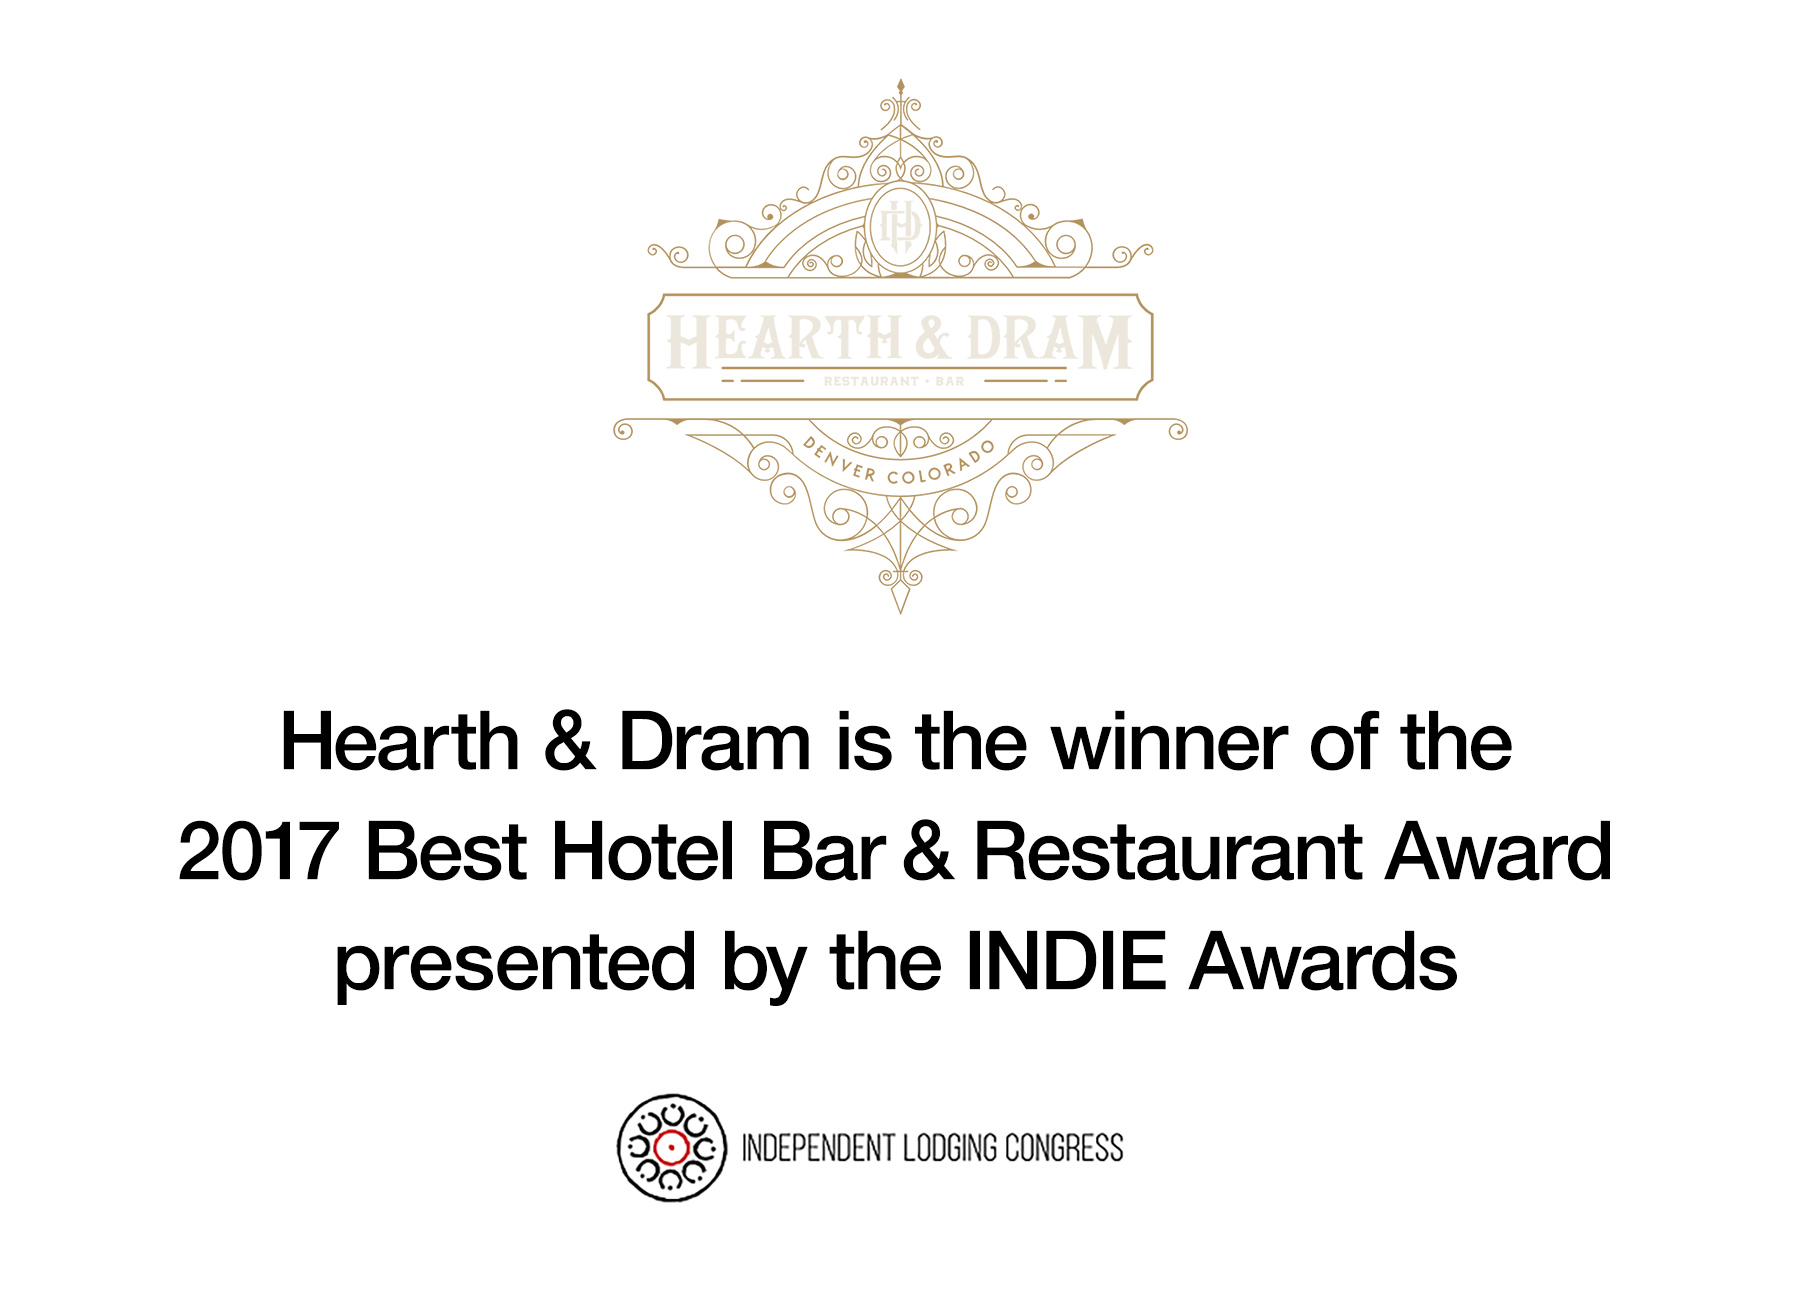 Award Winner: Hearth & Dram Hotel designed by MARKZEFF